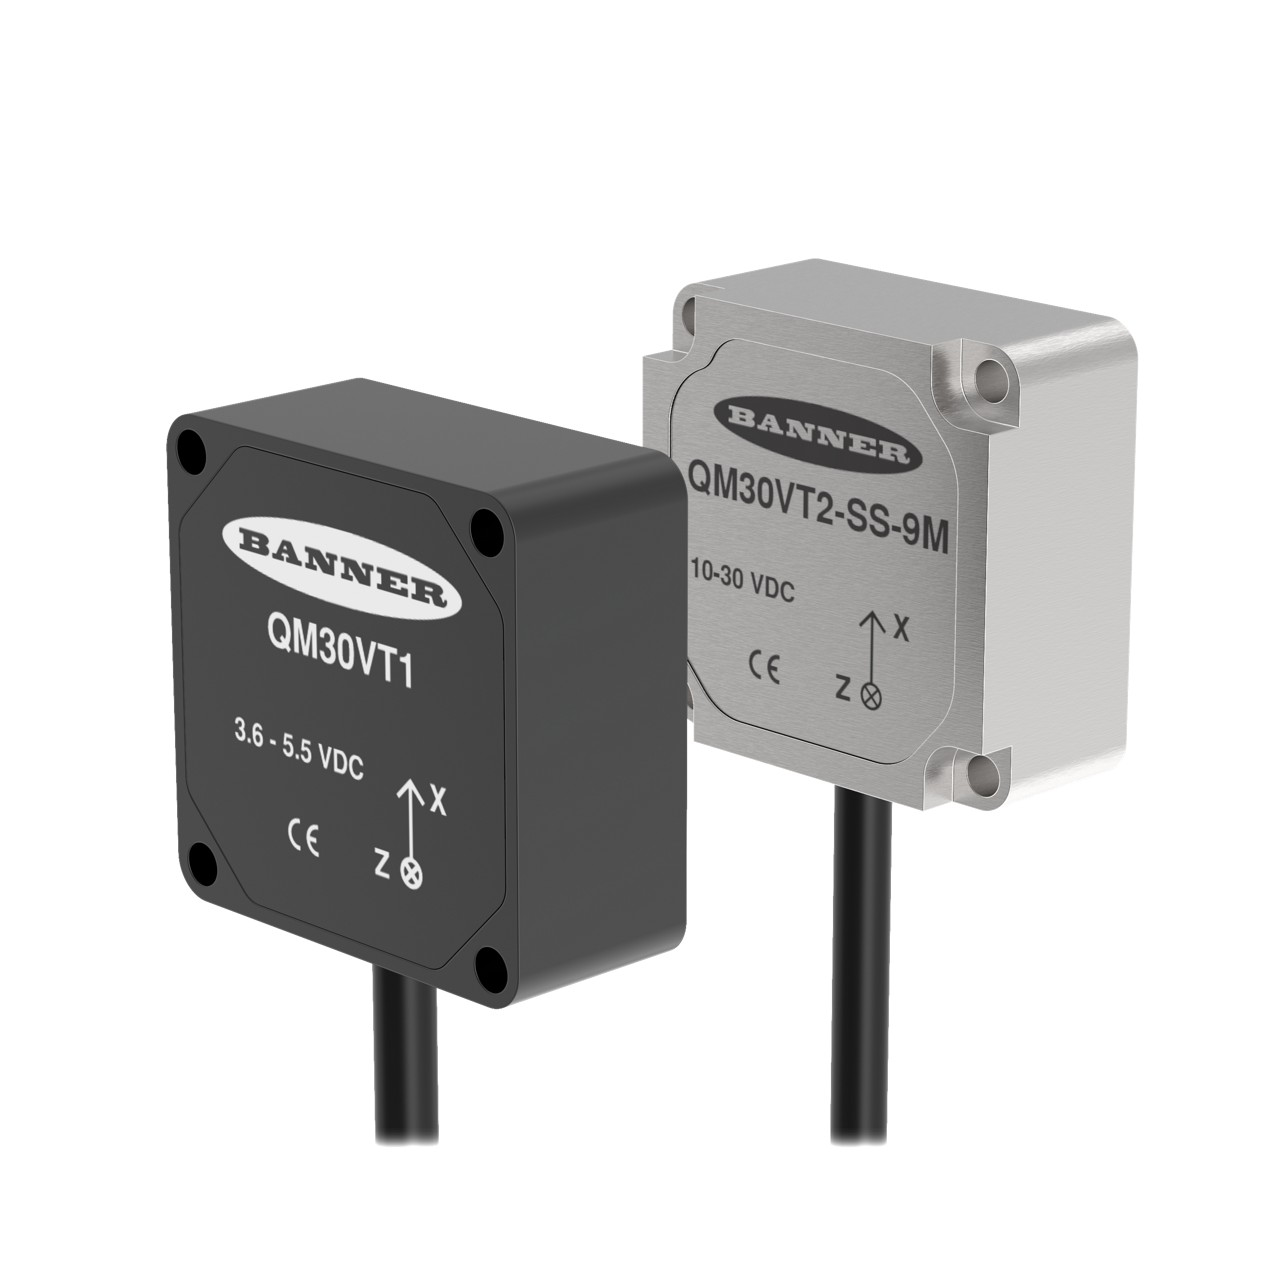 QM30VT Series vibration and temperature sensors